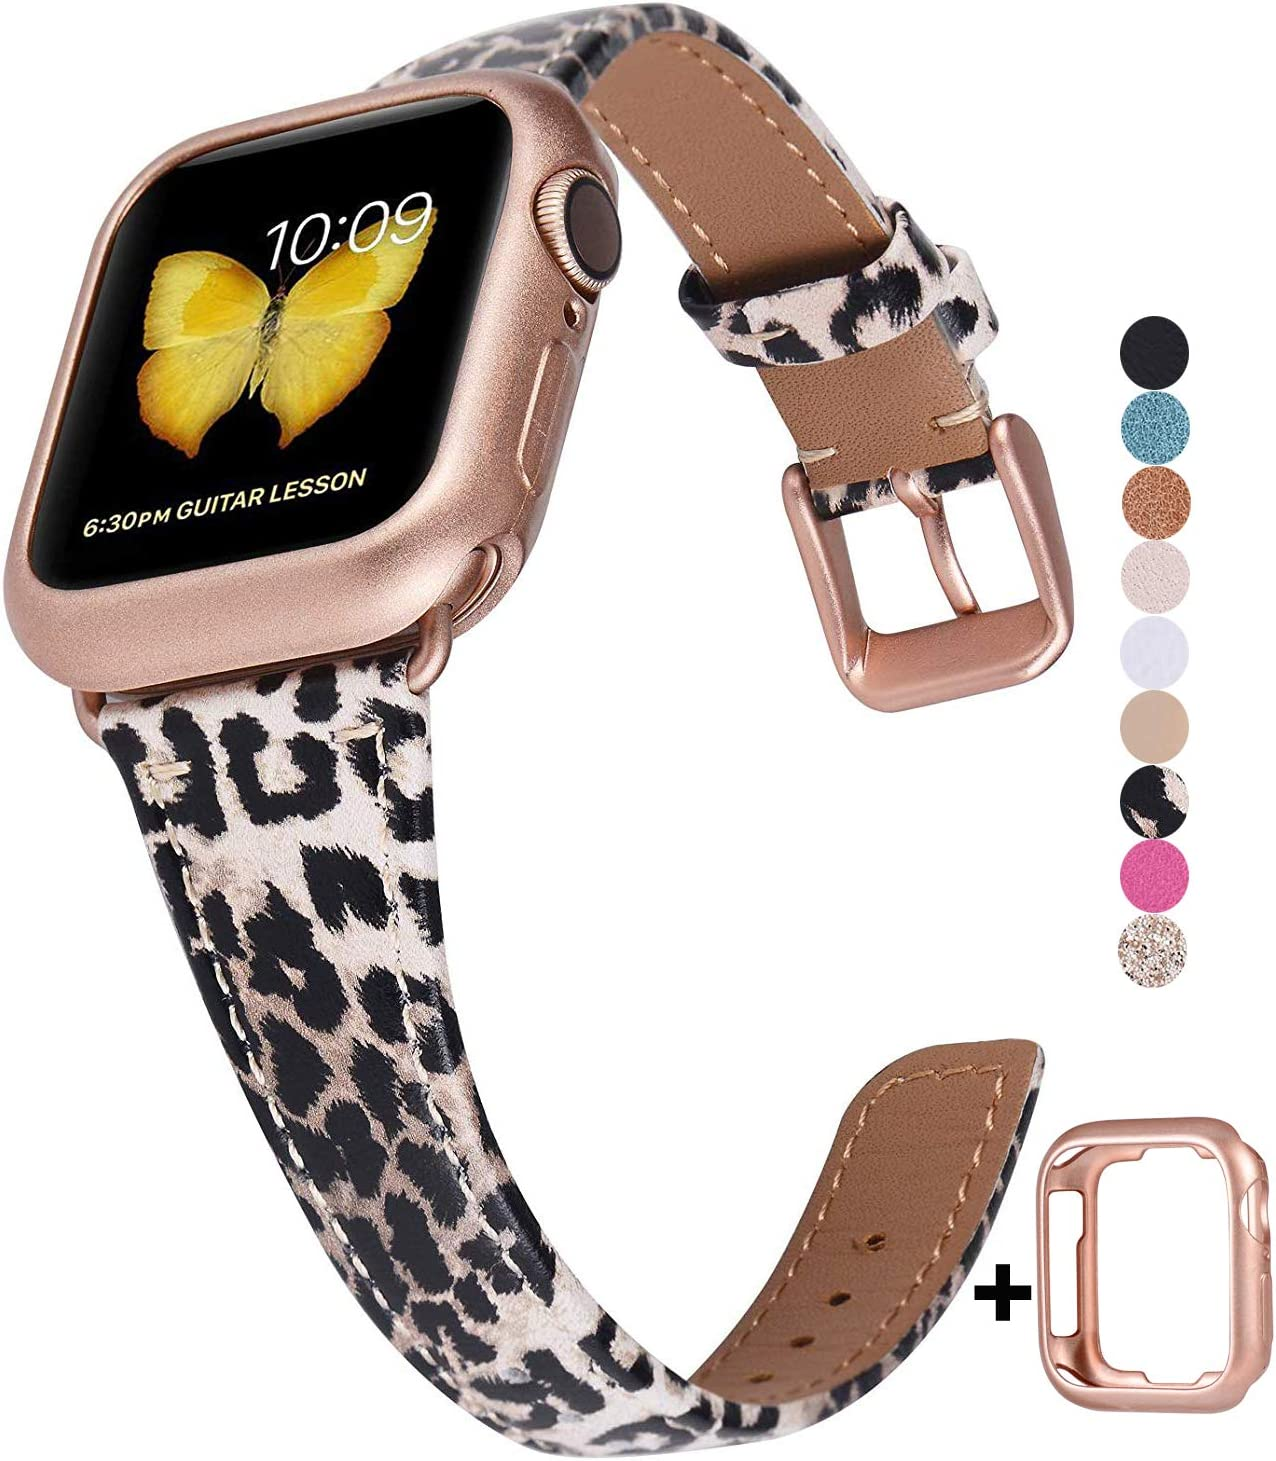 JSGJMY Genuine Leather Band Compatible with Apple Watch 38mm 40mm 42mm 44mm Women Slim Thin Strap for iWatch Series 5/4/3/2/1(Leopard with Series 5/4/3 Rose Gold Clasp,42mm/44mm S/M)